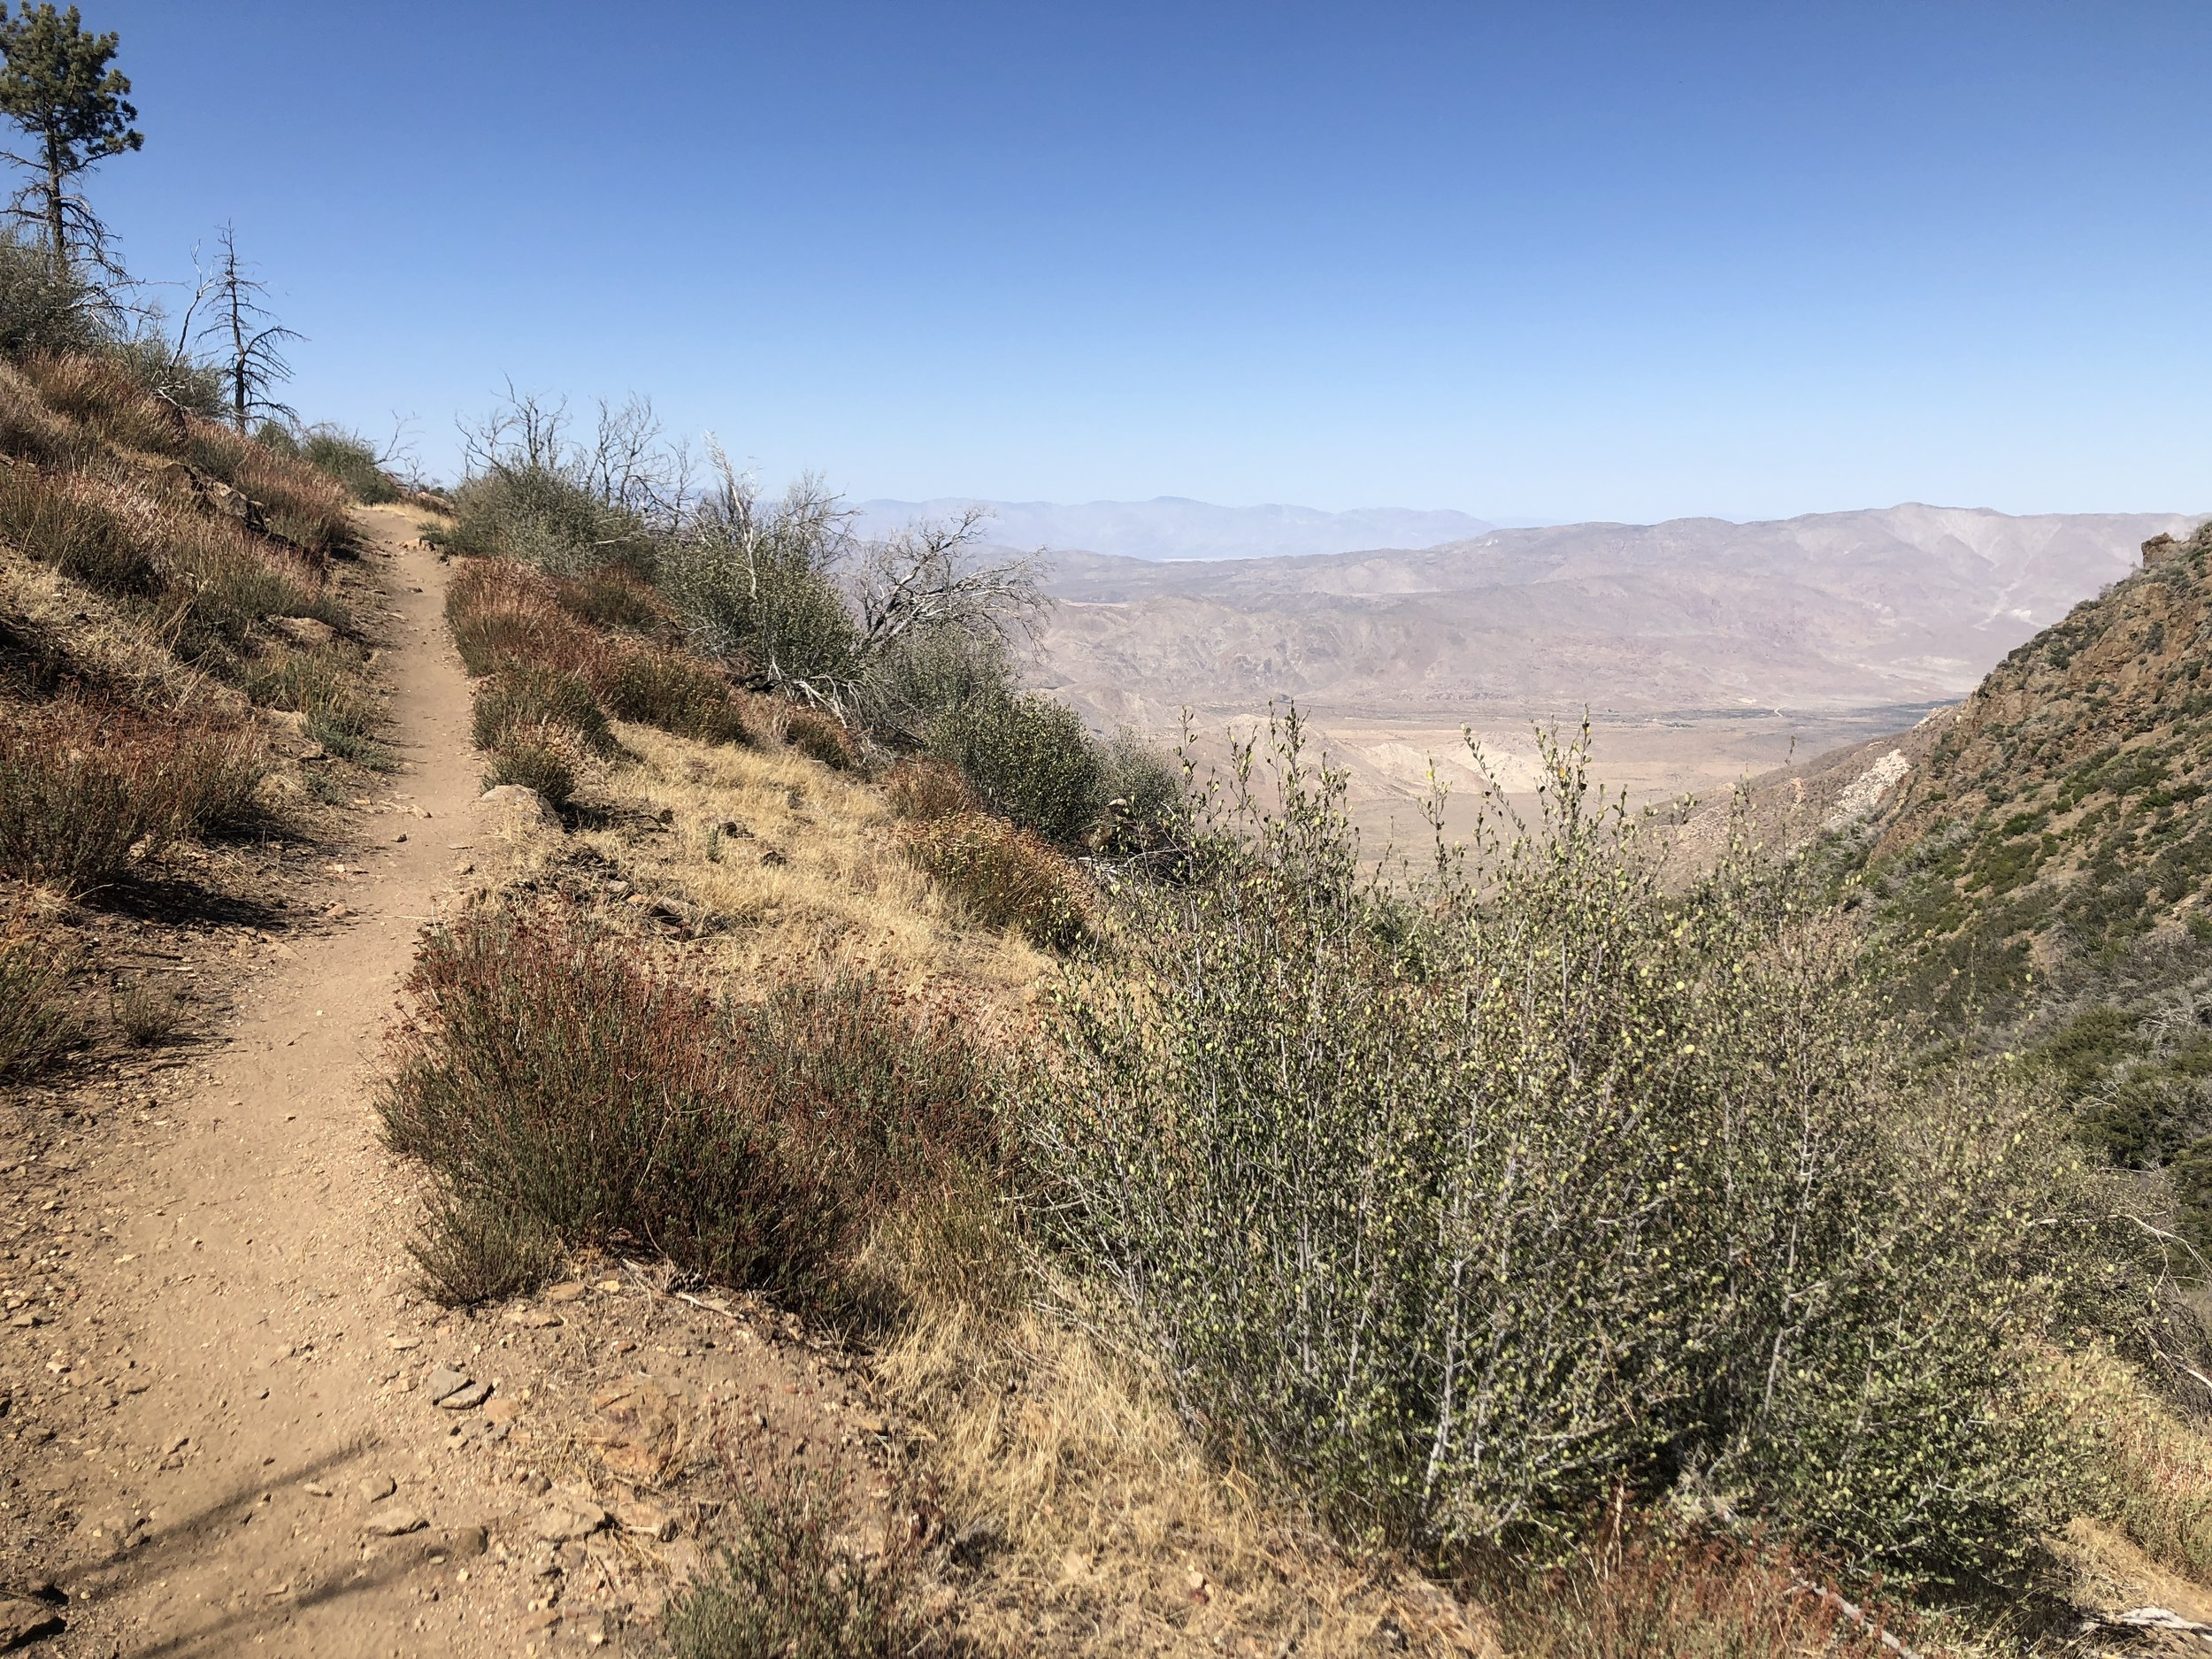 Last bit of the PCT before turning back to the trailhead.